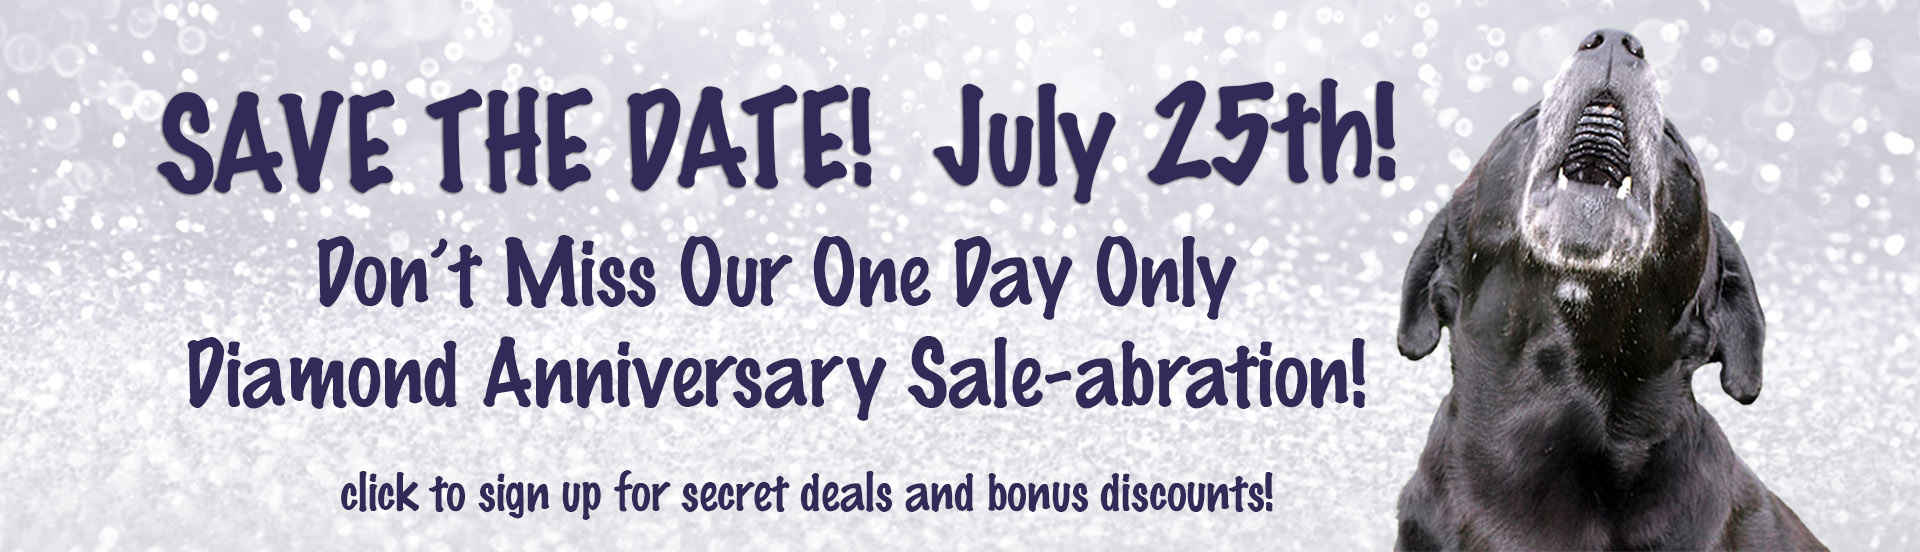 Join us for our one day anniversary sale July 25th!